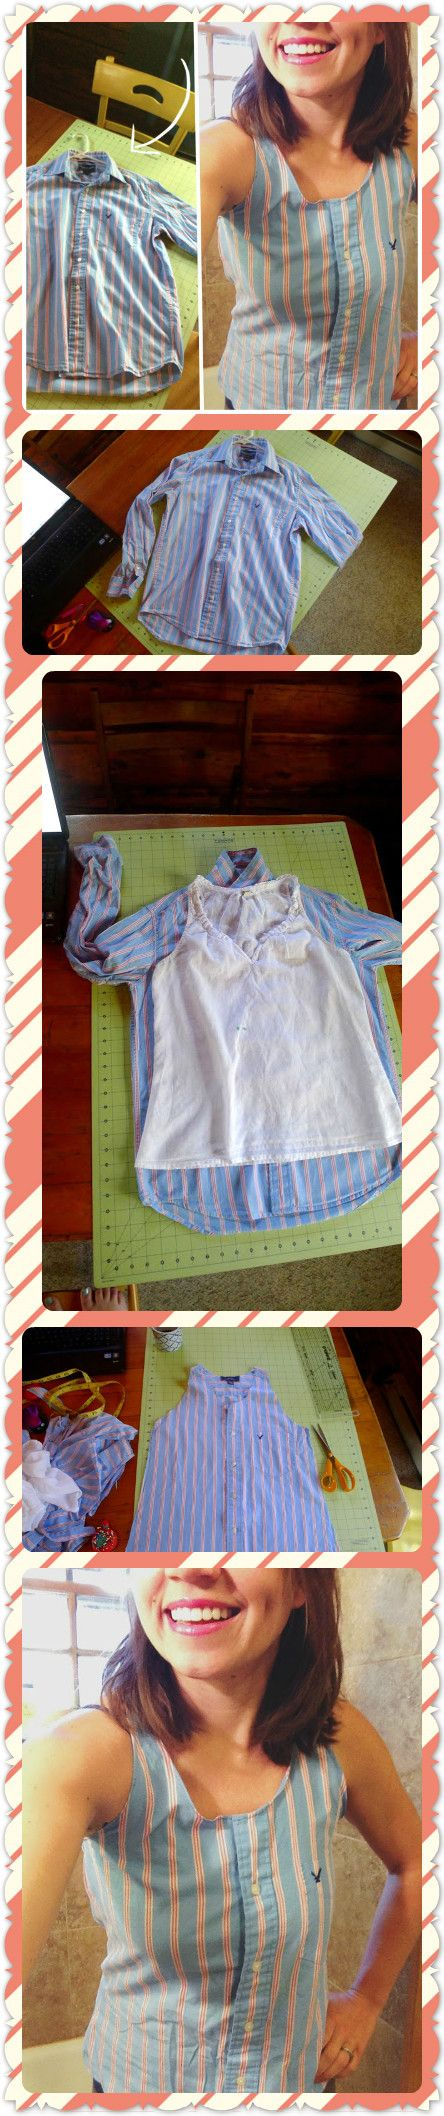 138 best refashion mens shirts 2 images on pinterest diy diy mens dress shirt to super cute summer top diy crafts home made easy crafts solutioingenieria Images